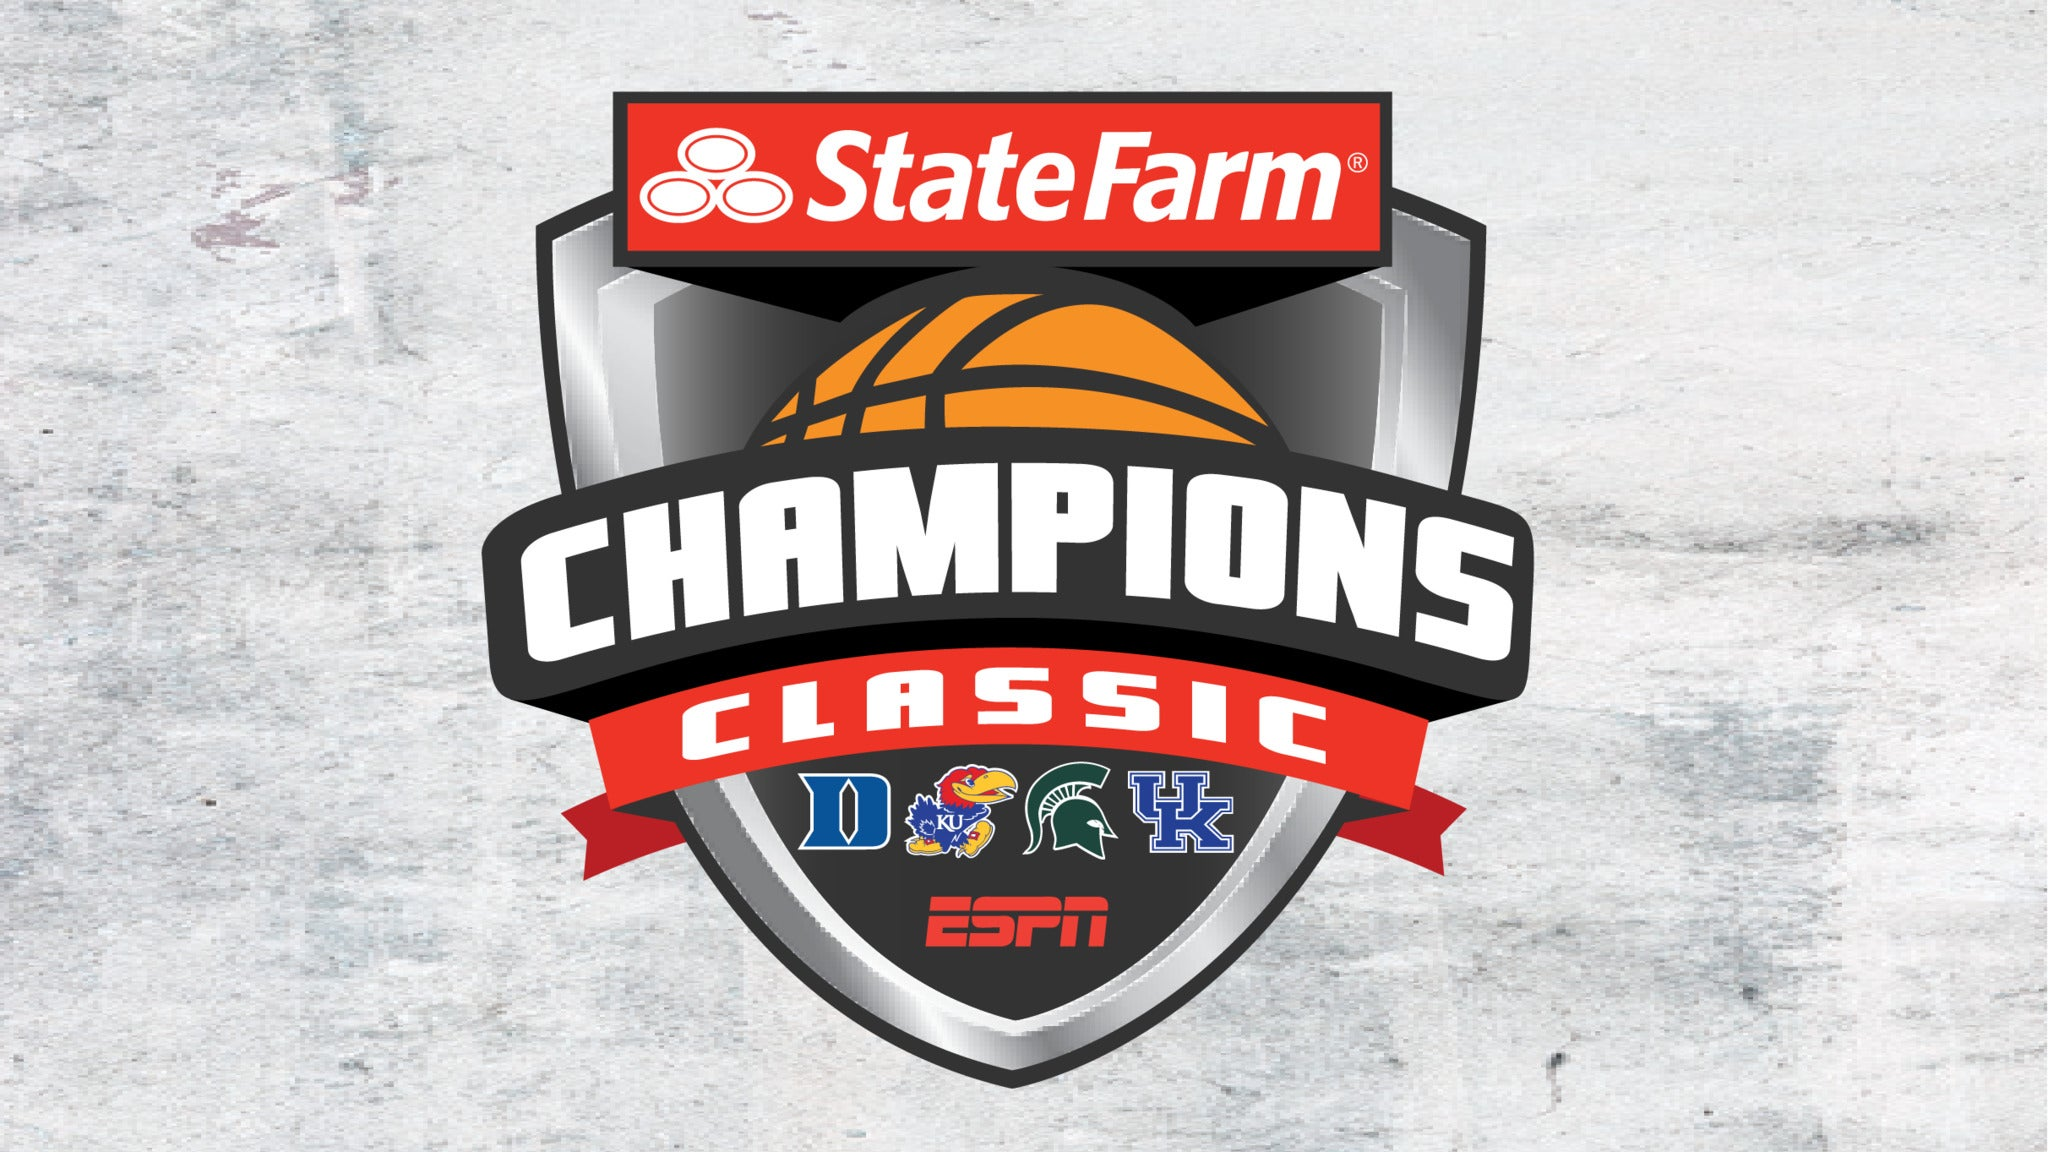 Image used with permission from Ticketmaster | State Farm Champions Classic tickets